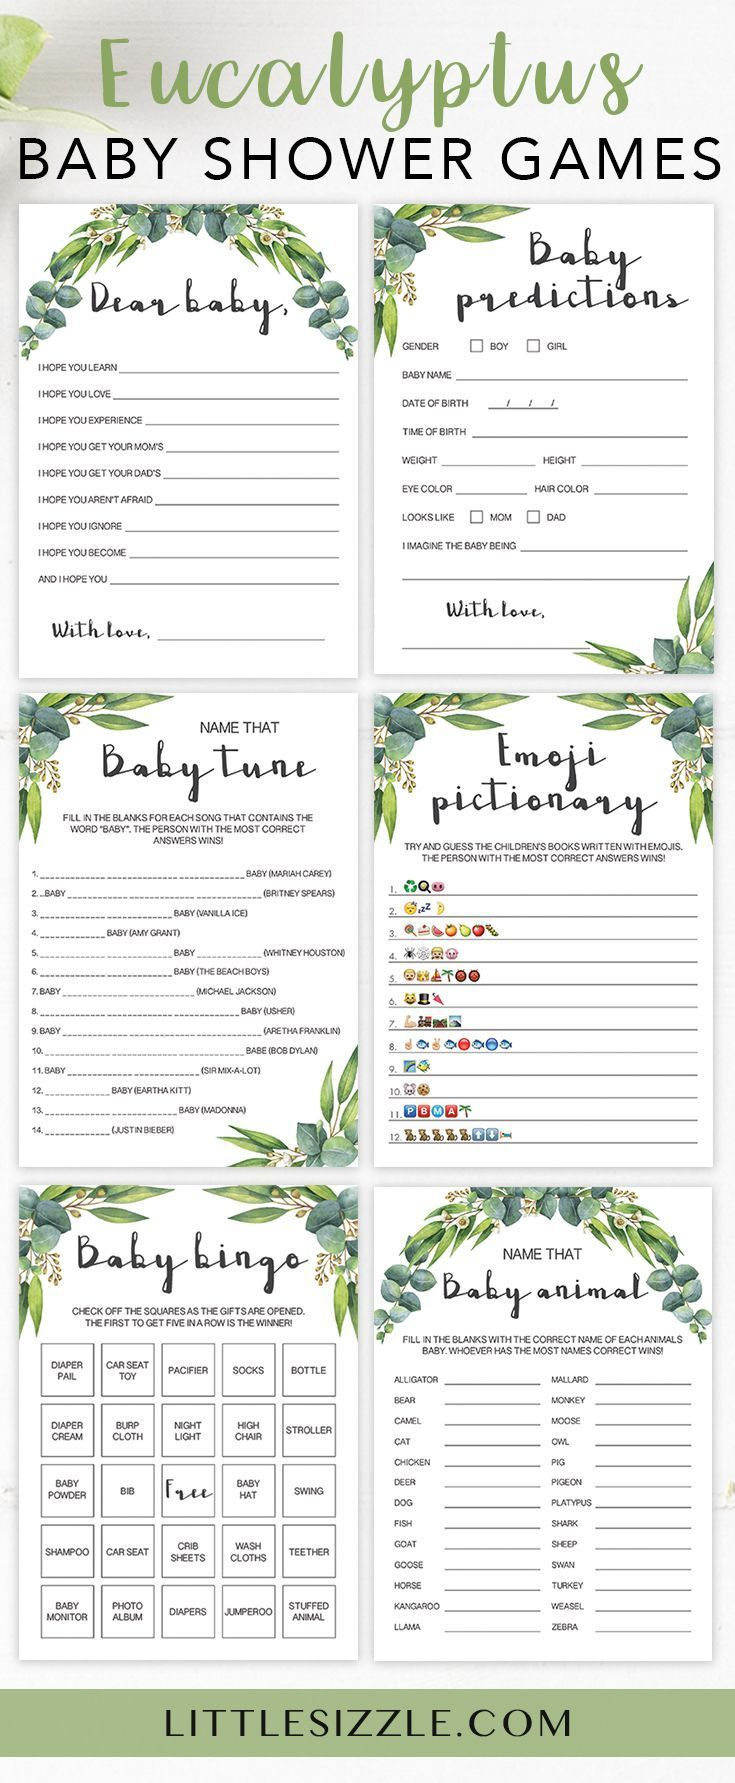 Popular Greenery Baby Shower Games Printable Baby Shower Games Unique Baby Shower Games For Large Groups Fun Baby Shower Games